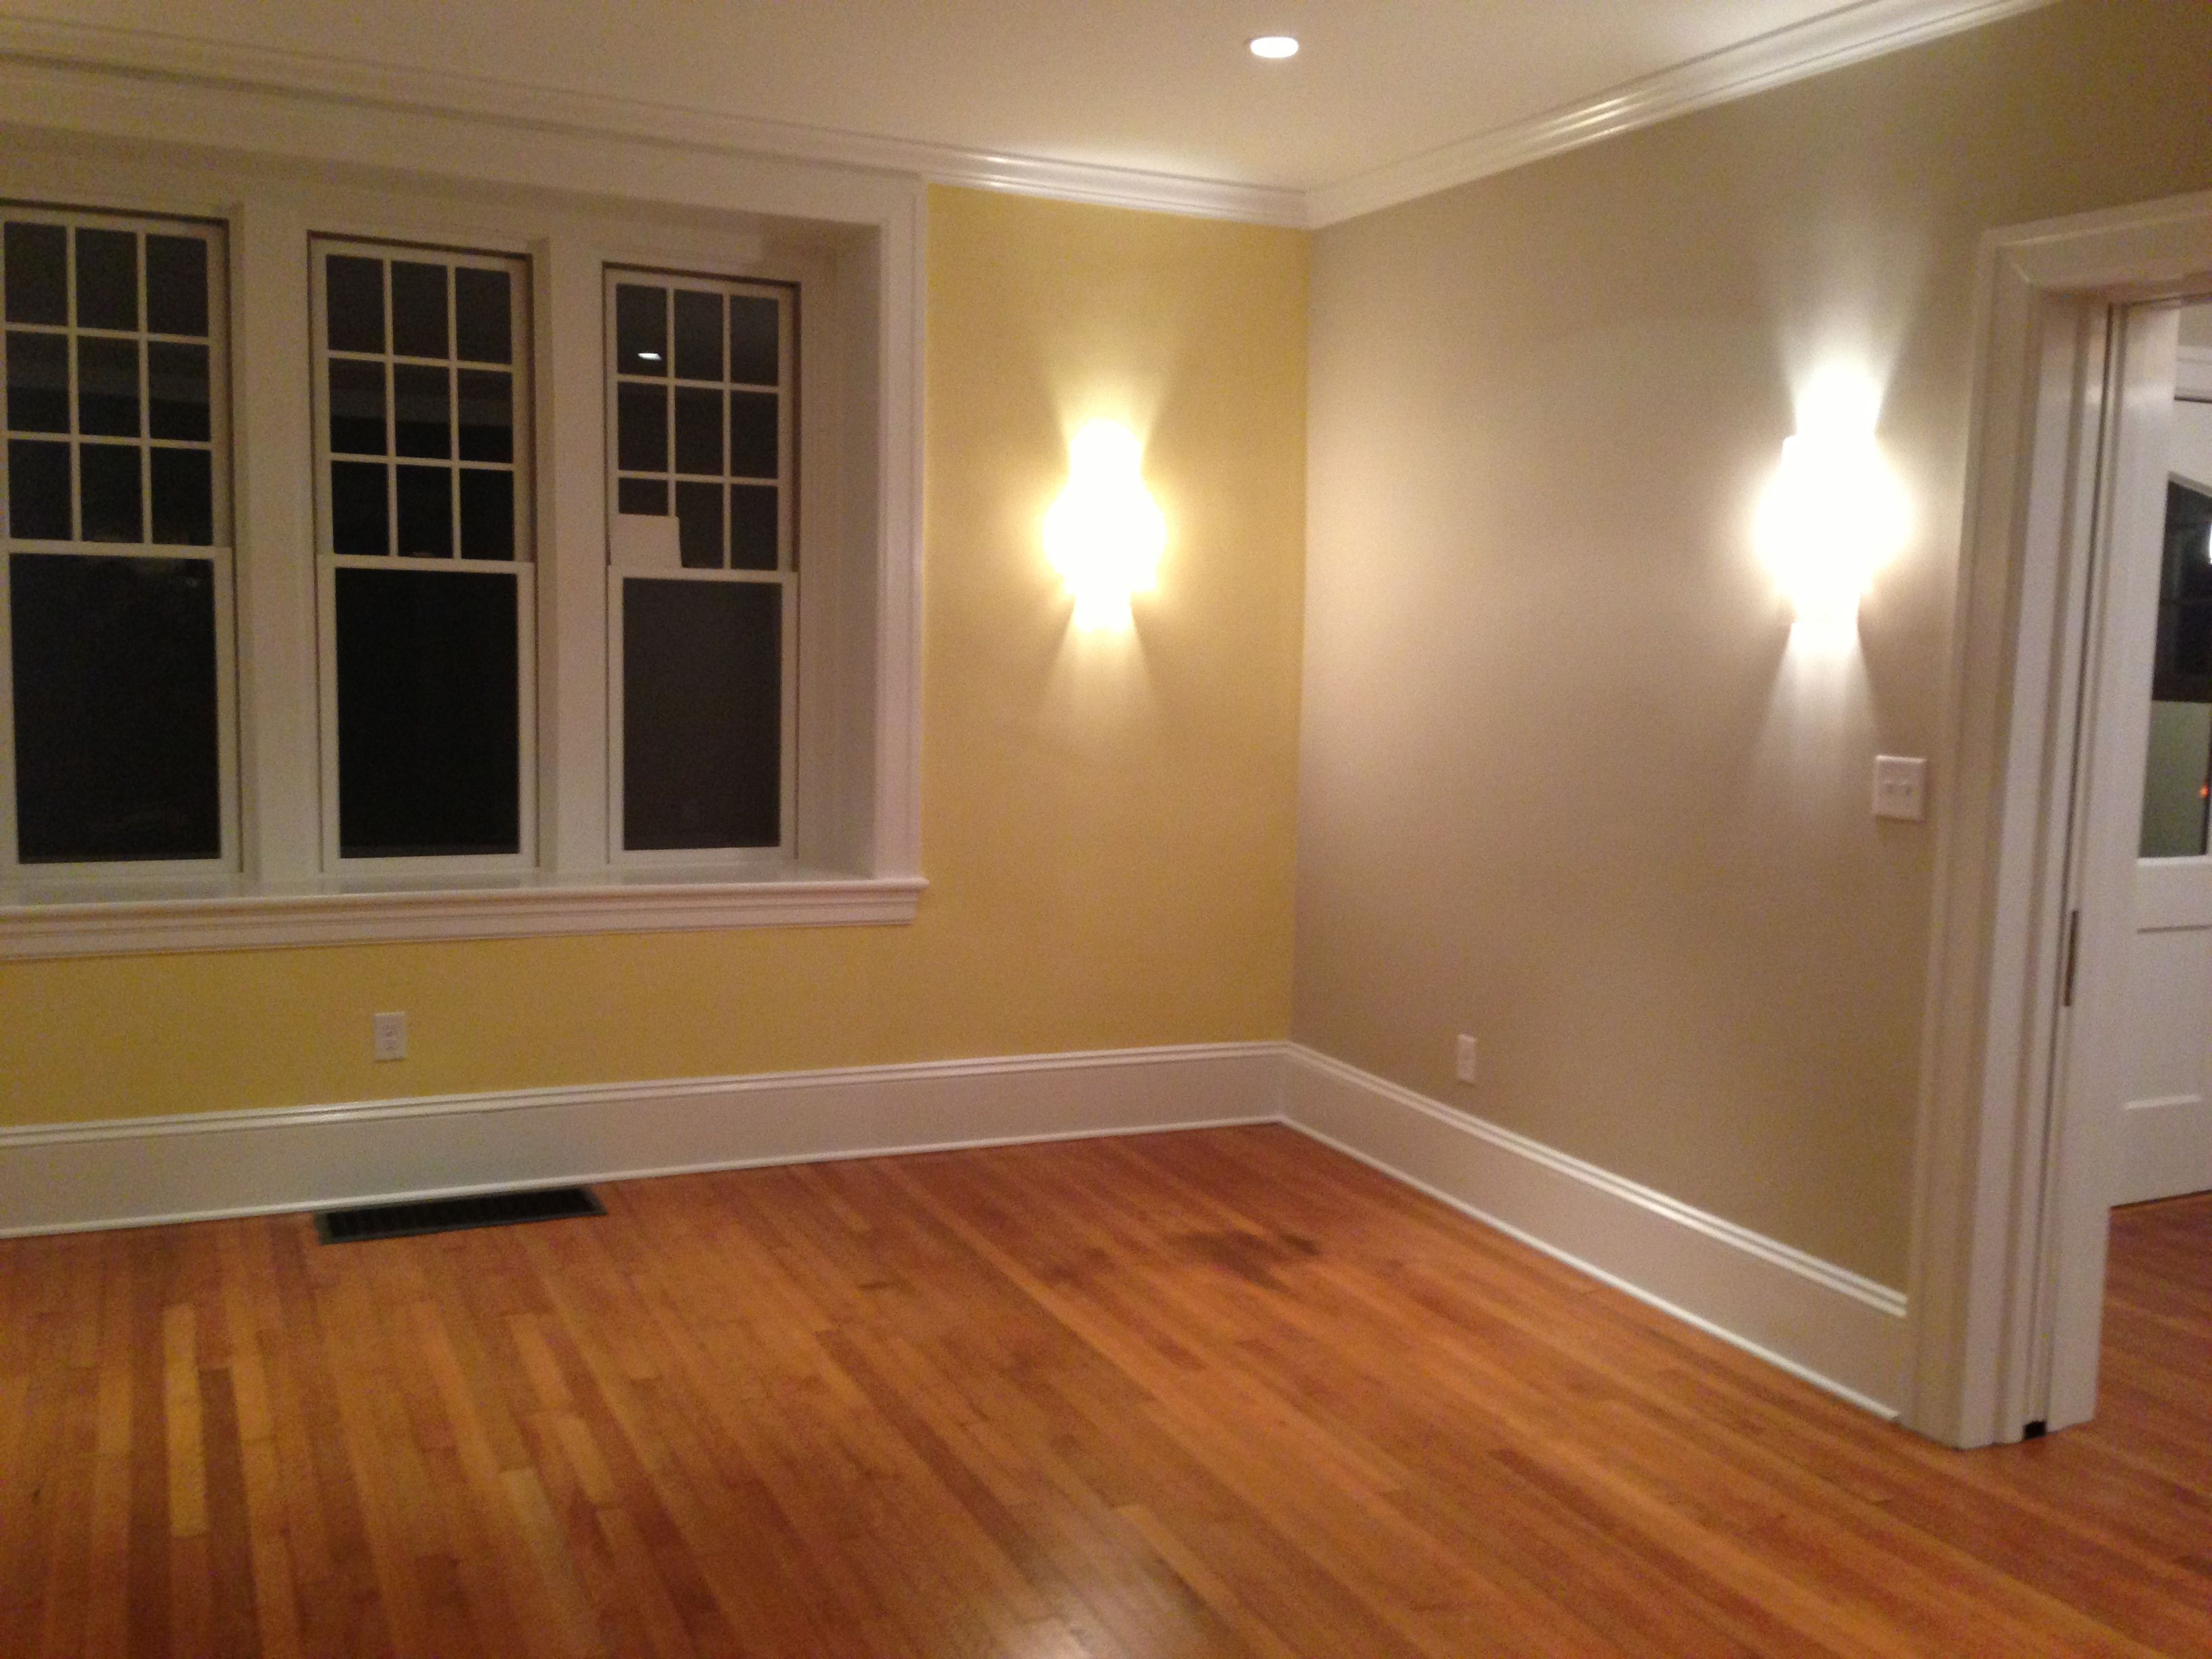 Rooms With Light Yellow Walls